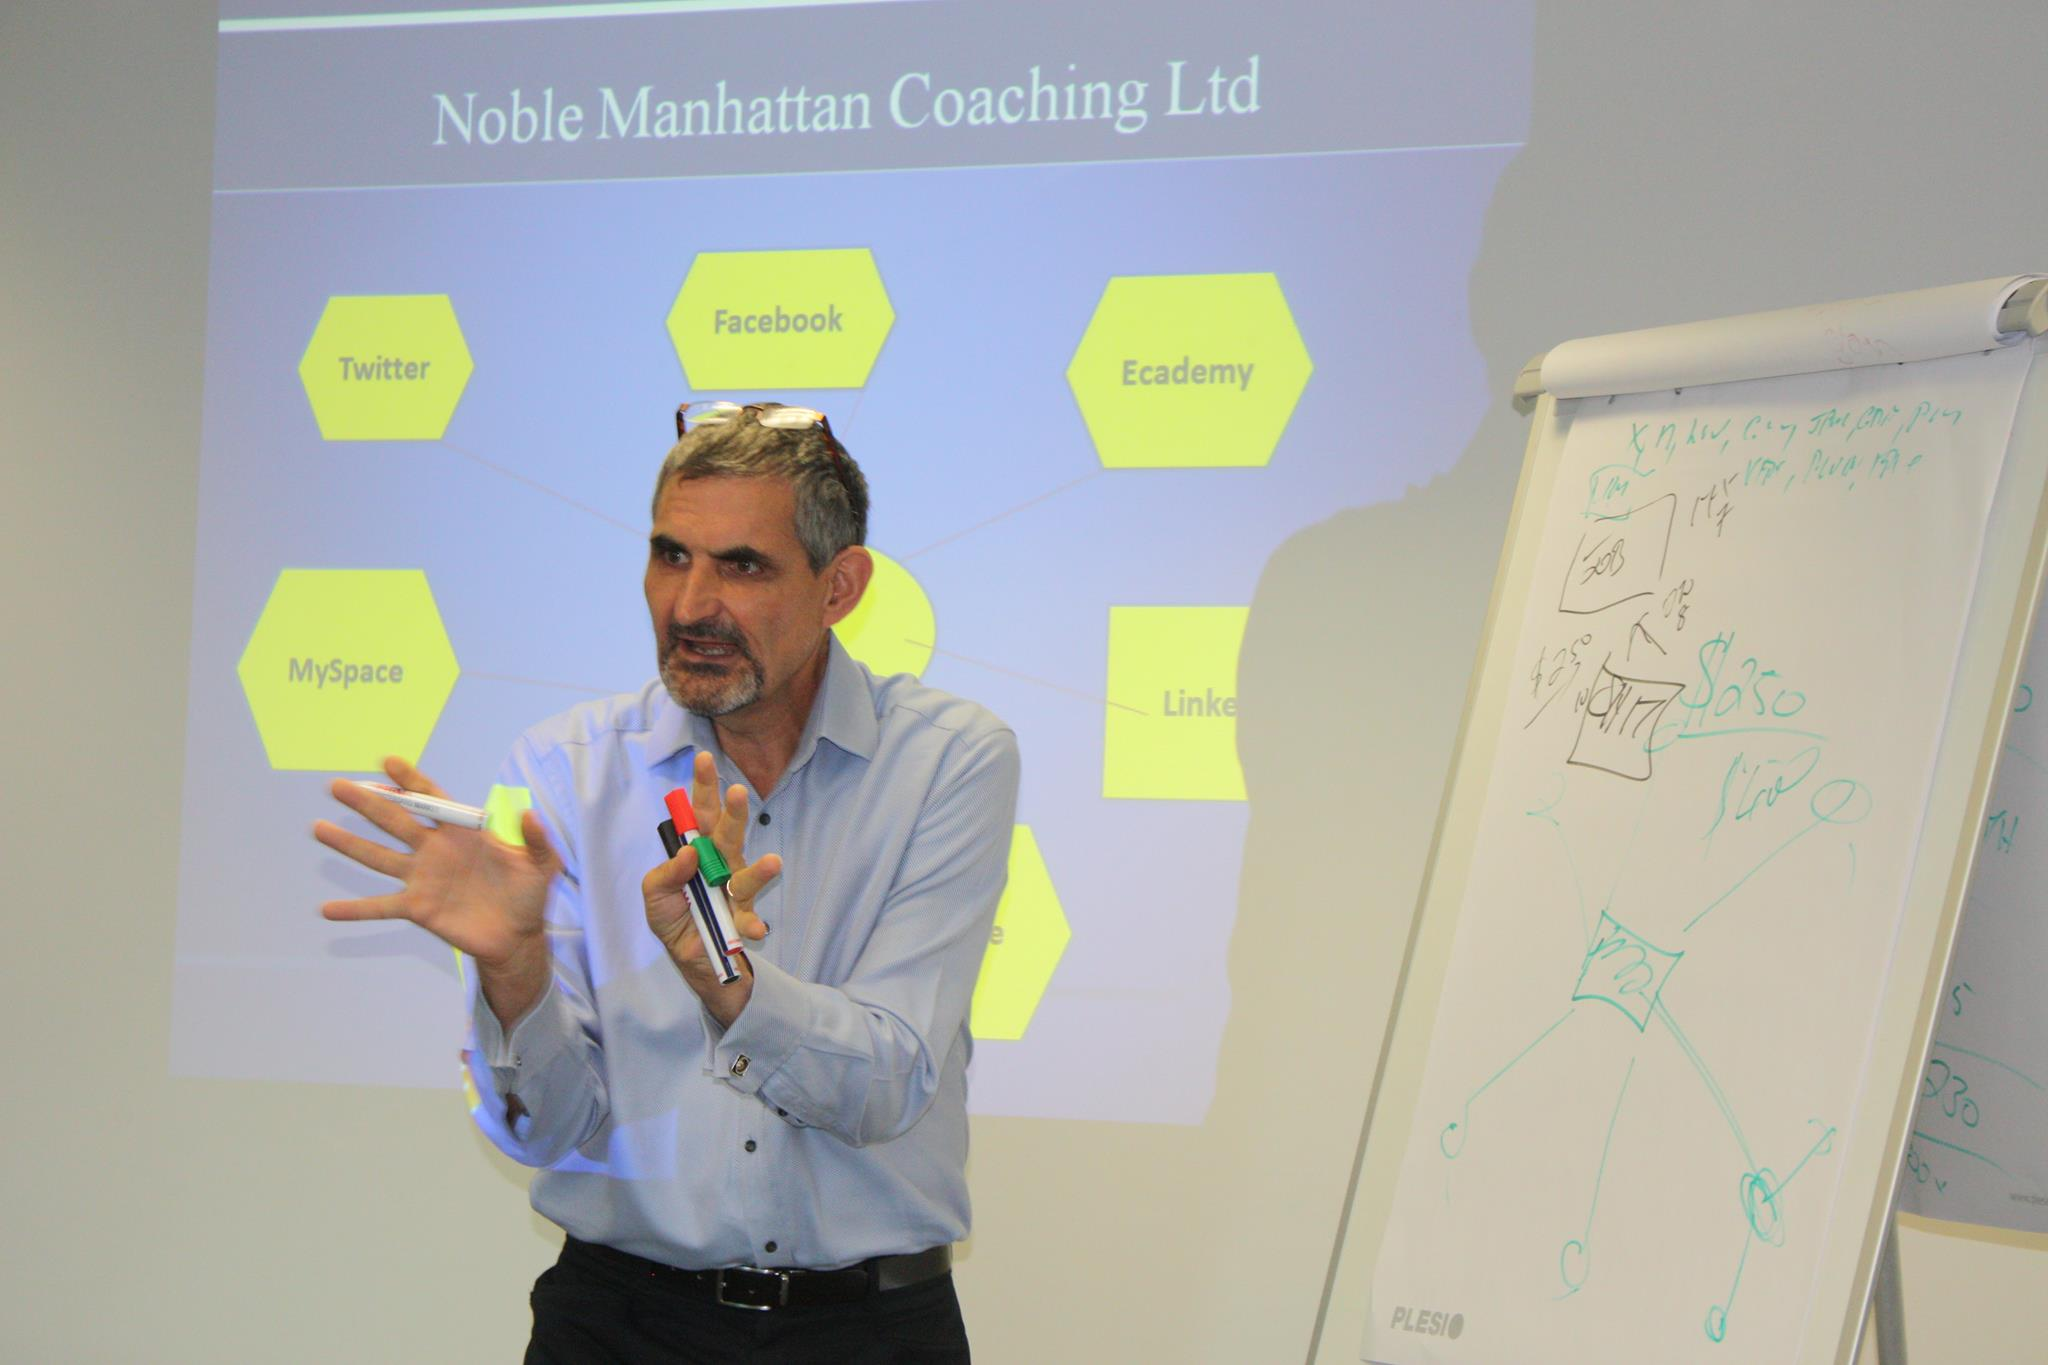 Building your coaching business